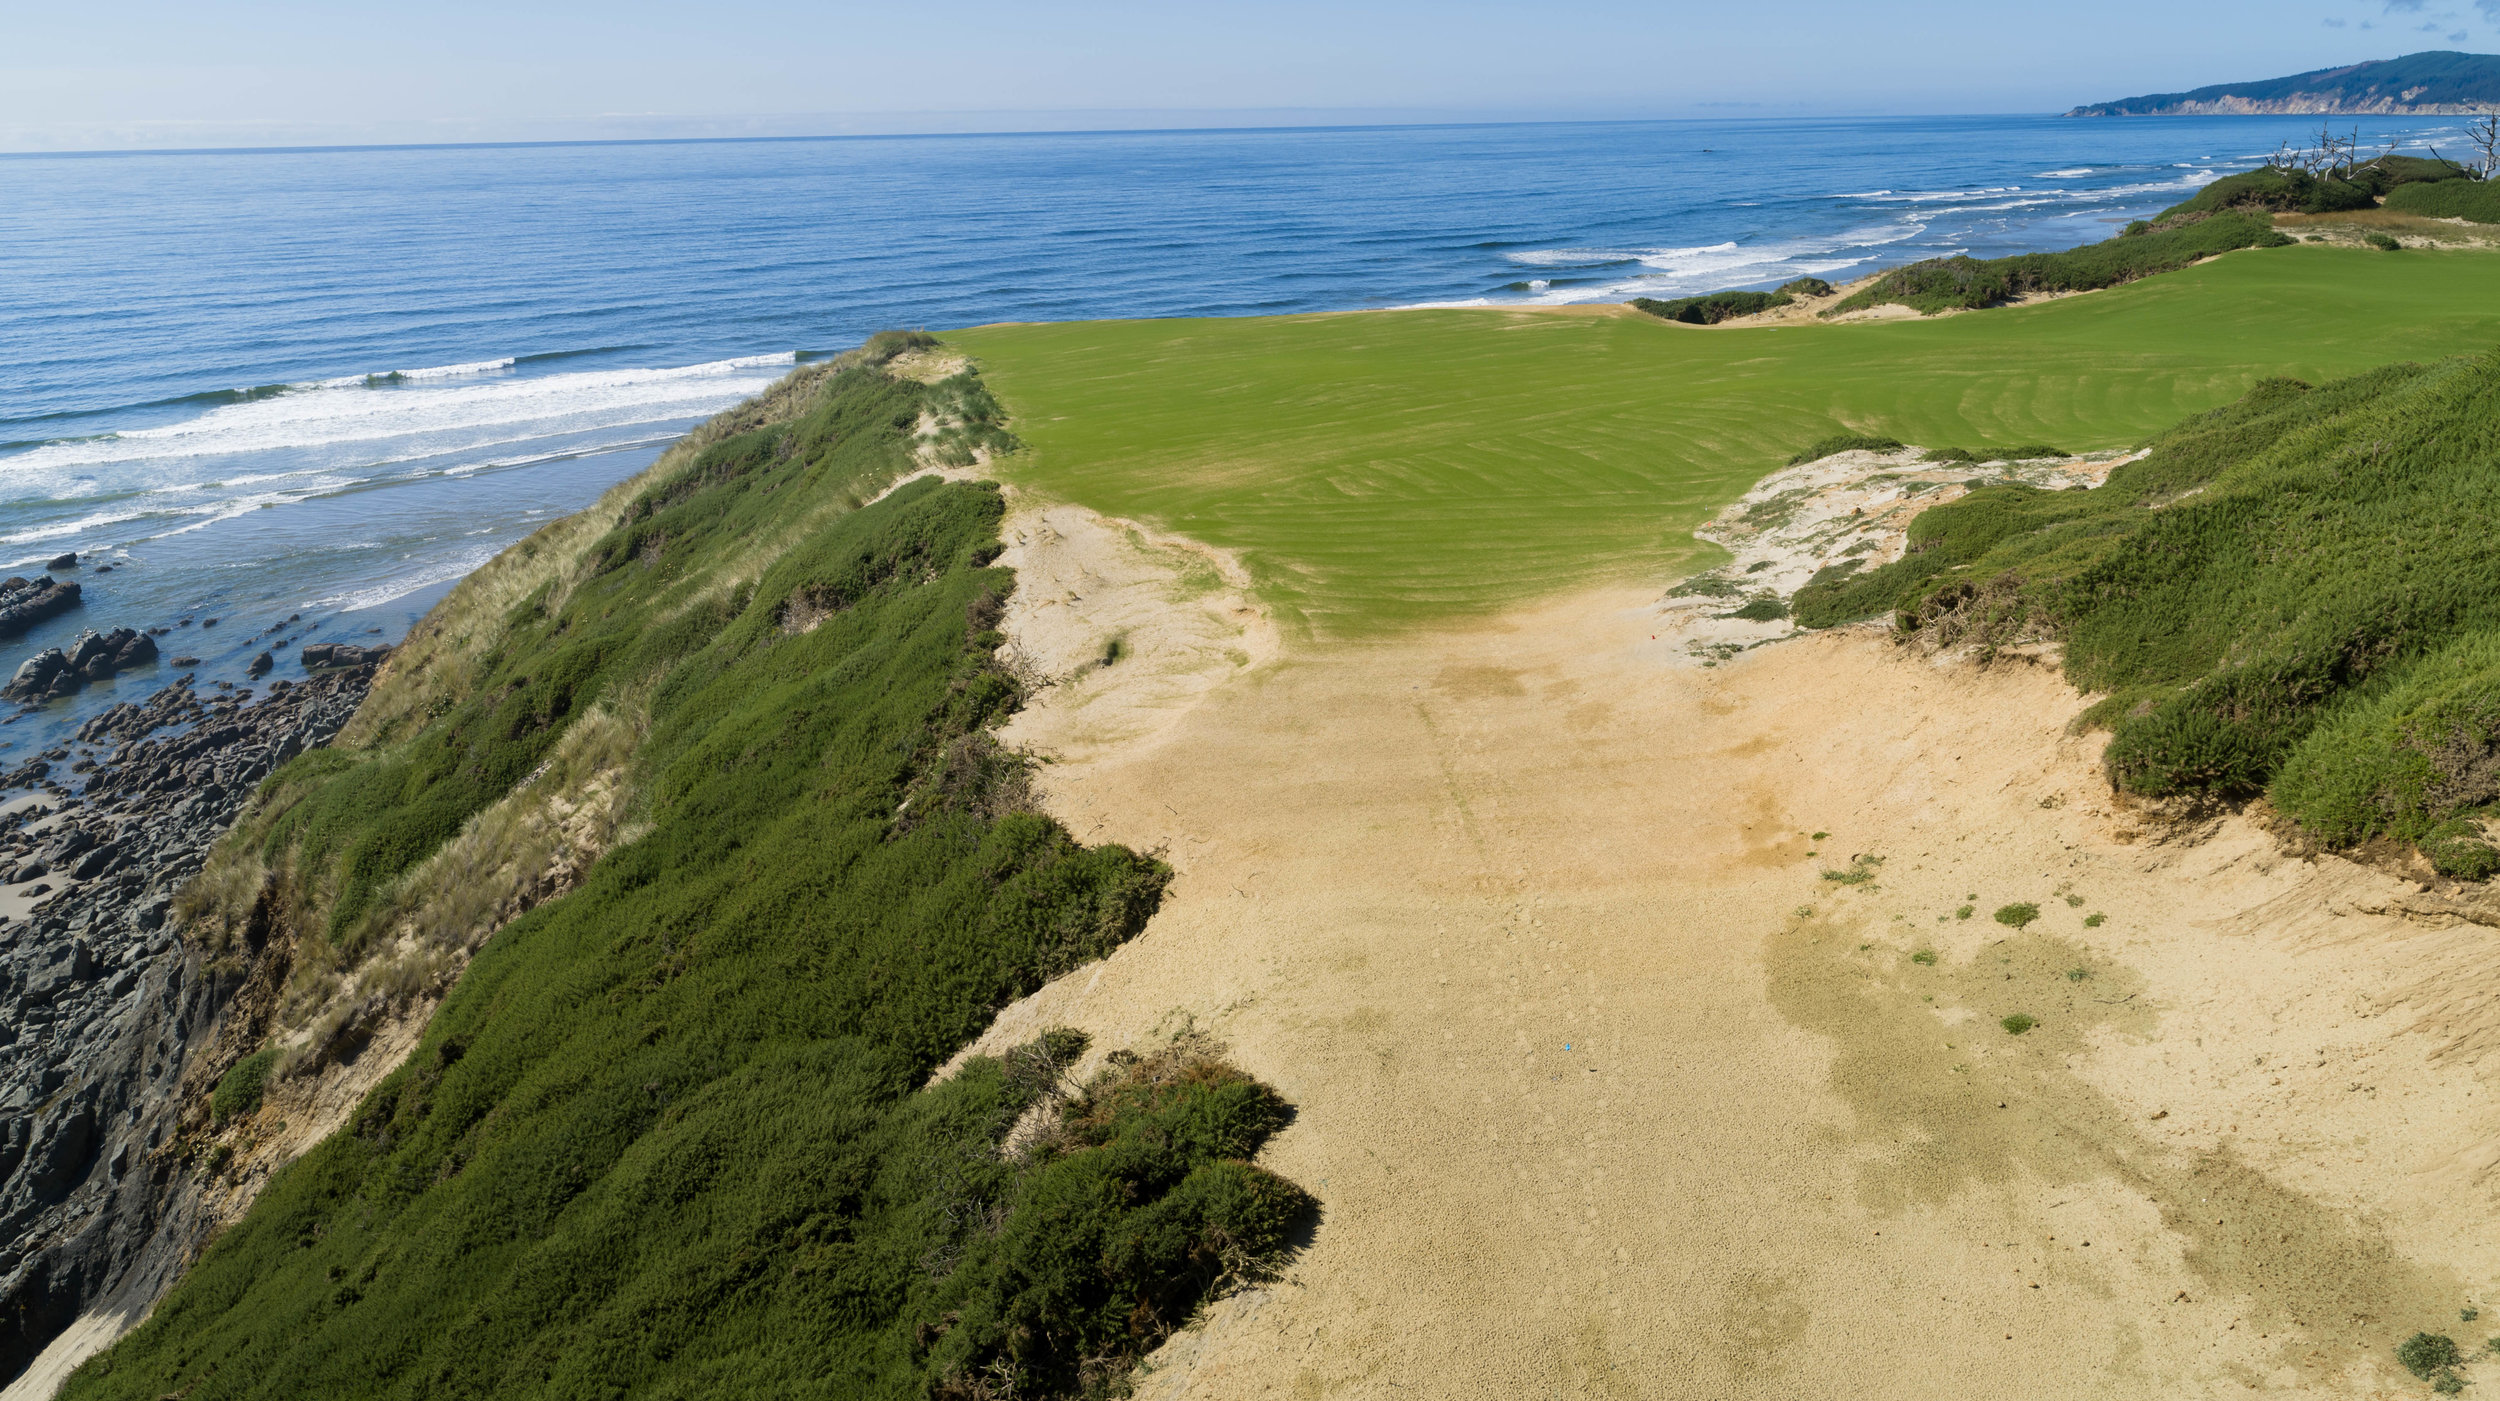 It's hard to look at Sheep Ranch No. 16, a dynamic Par-3 heading north, and not think about the amount of fun this double green complex contains. Overlooking a beautiful rock formation to the west in the Pacific Ocean, this hole is sure to get your blood boiling, challenging your focus on the shot at hand as well as taking in the beautiful scenery.